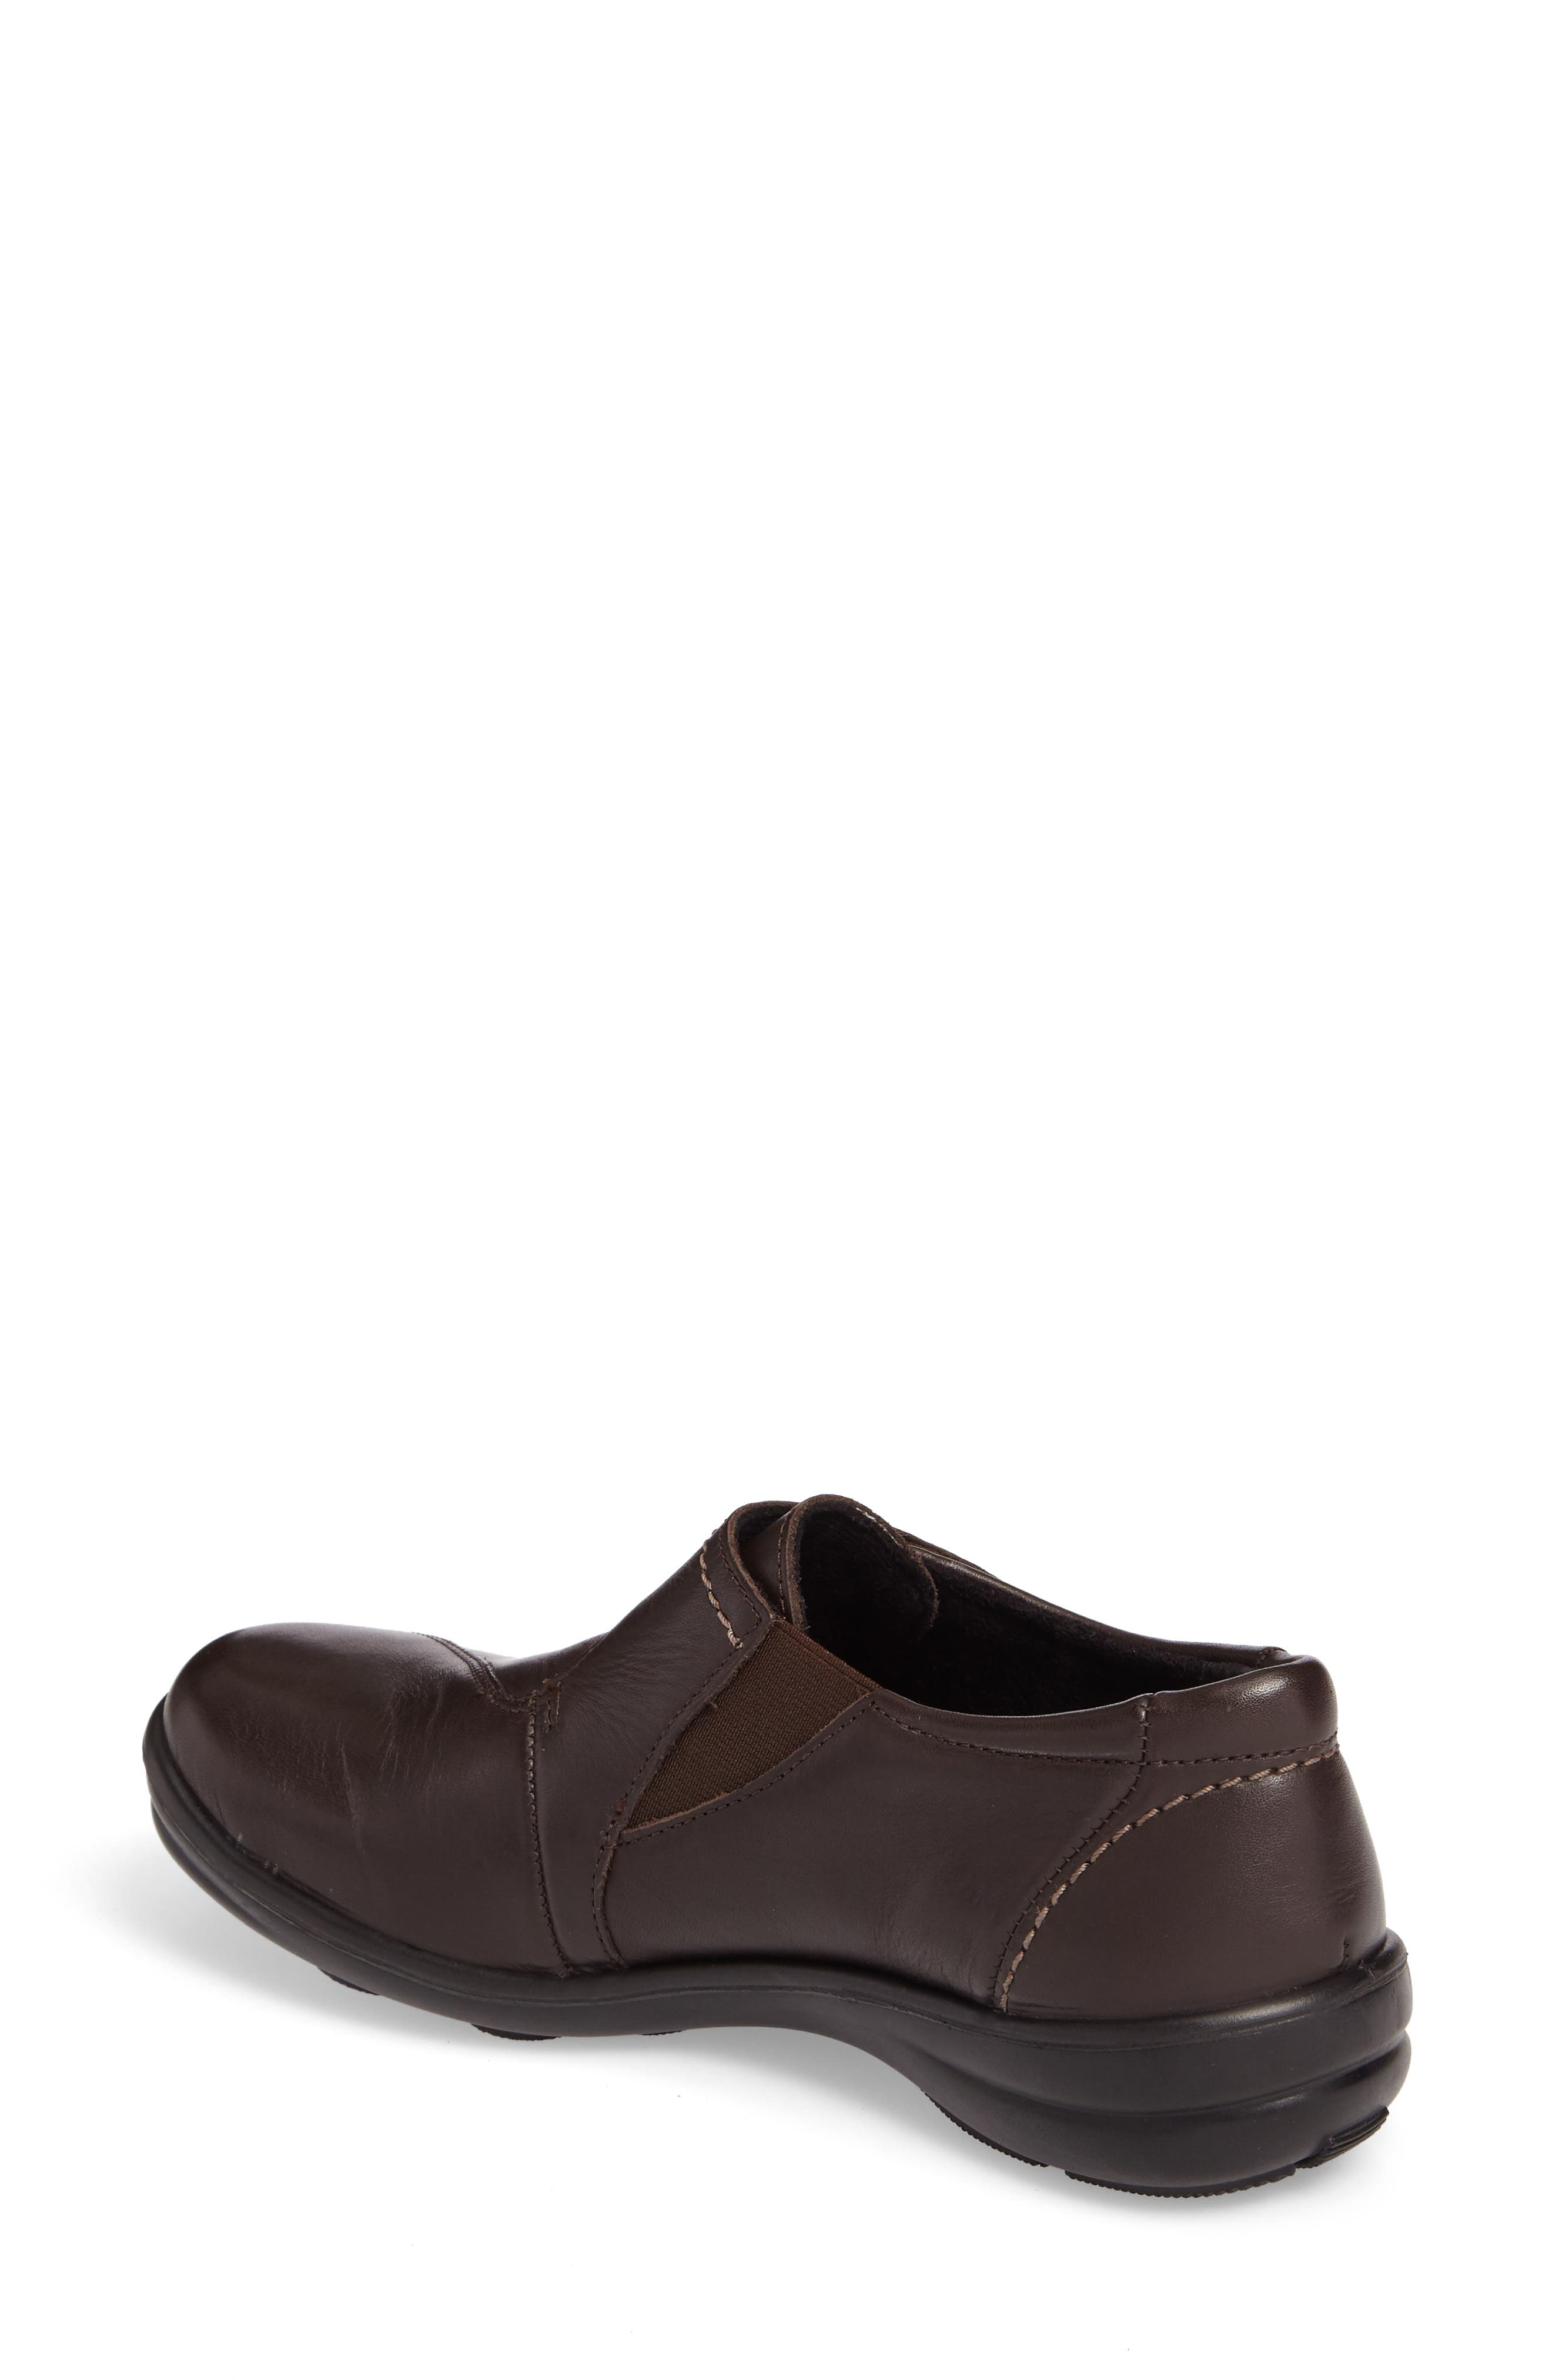 'Maddy 04' Slip-On Flat,                             Alternate thumbnail 2, color,                             Moro Leather